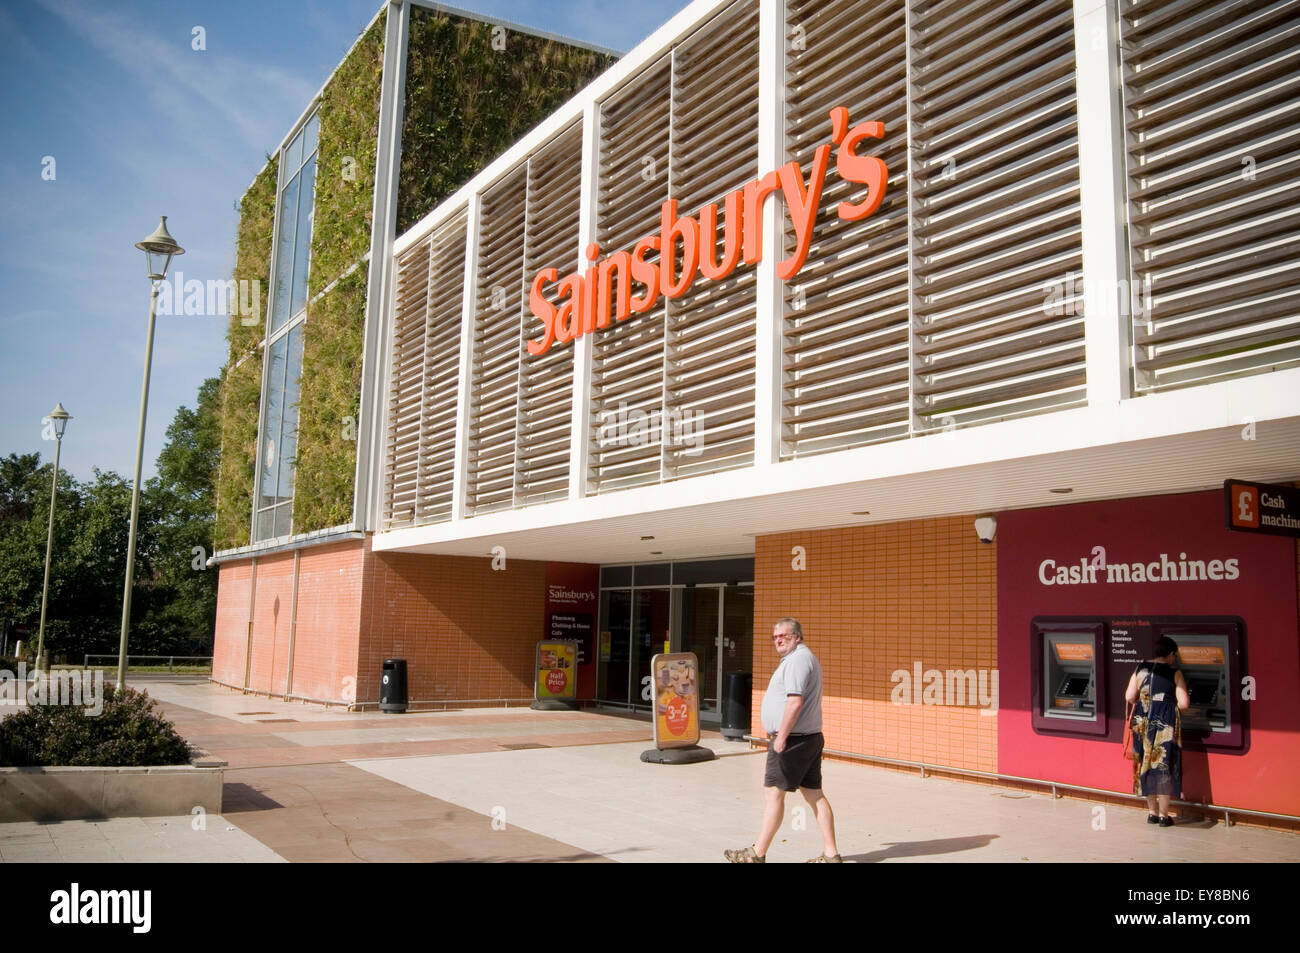 Seductive Sainsburys Sainsburys Town Center Centre Supermarket Supermarkets  With Handsome Sainsburys Sainsburys Town Center Centre Supermarket Supermarkets Uk Brand  Branding Logo Welwyn Garden City With Attractive Cote London Covent Garden Also Planning Permission For Garden Sheds In Addition Bristol Gardens Spa And Bmi Garden Hospital As Well As Riverhill Himalayan Gardens Additionally How To Terrace A Sloping Garden From Alamycom With   Handsome Sainsburys Sainsburys Town Center Centre Supermarket Supermarkets  With Attractive Sainsburys Sainsburys Town Center Centre Supermarket Supermarkets Uk Brand  Branding Logo Welwyn Garden City And Seductive Cote London Covent Garden Also Planning Permission For Garden Sheds In Addition Bristol Gardens Spa From Alamycom